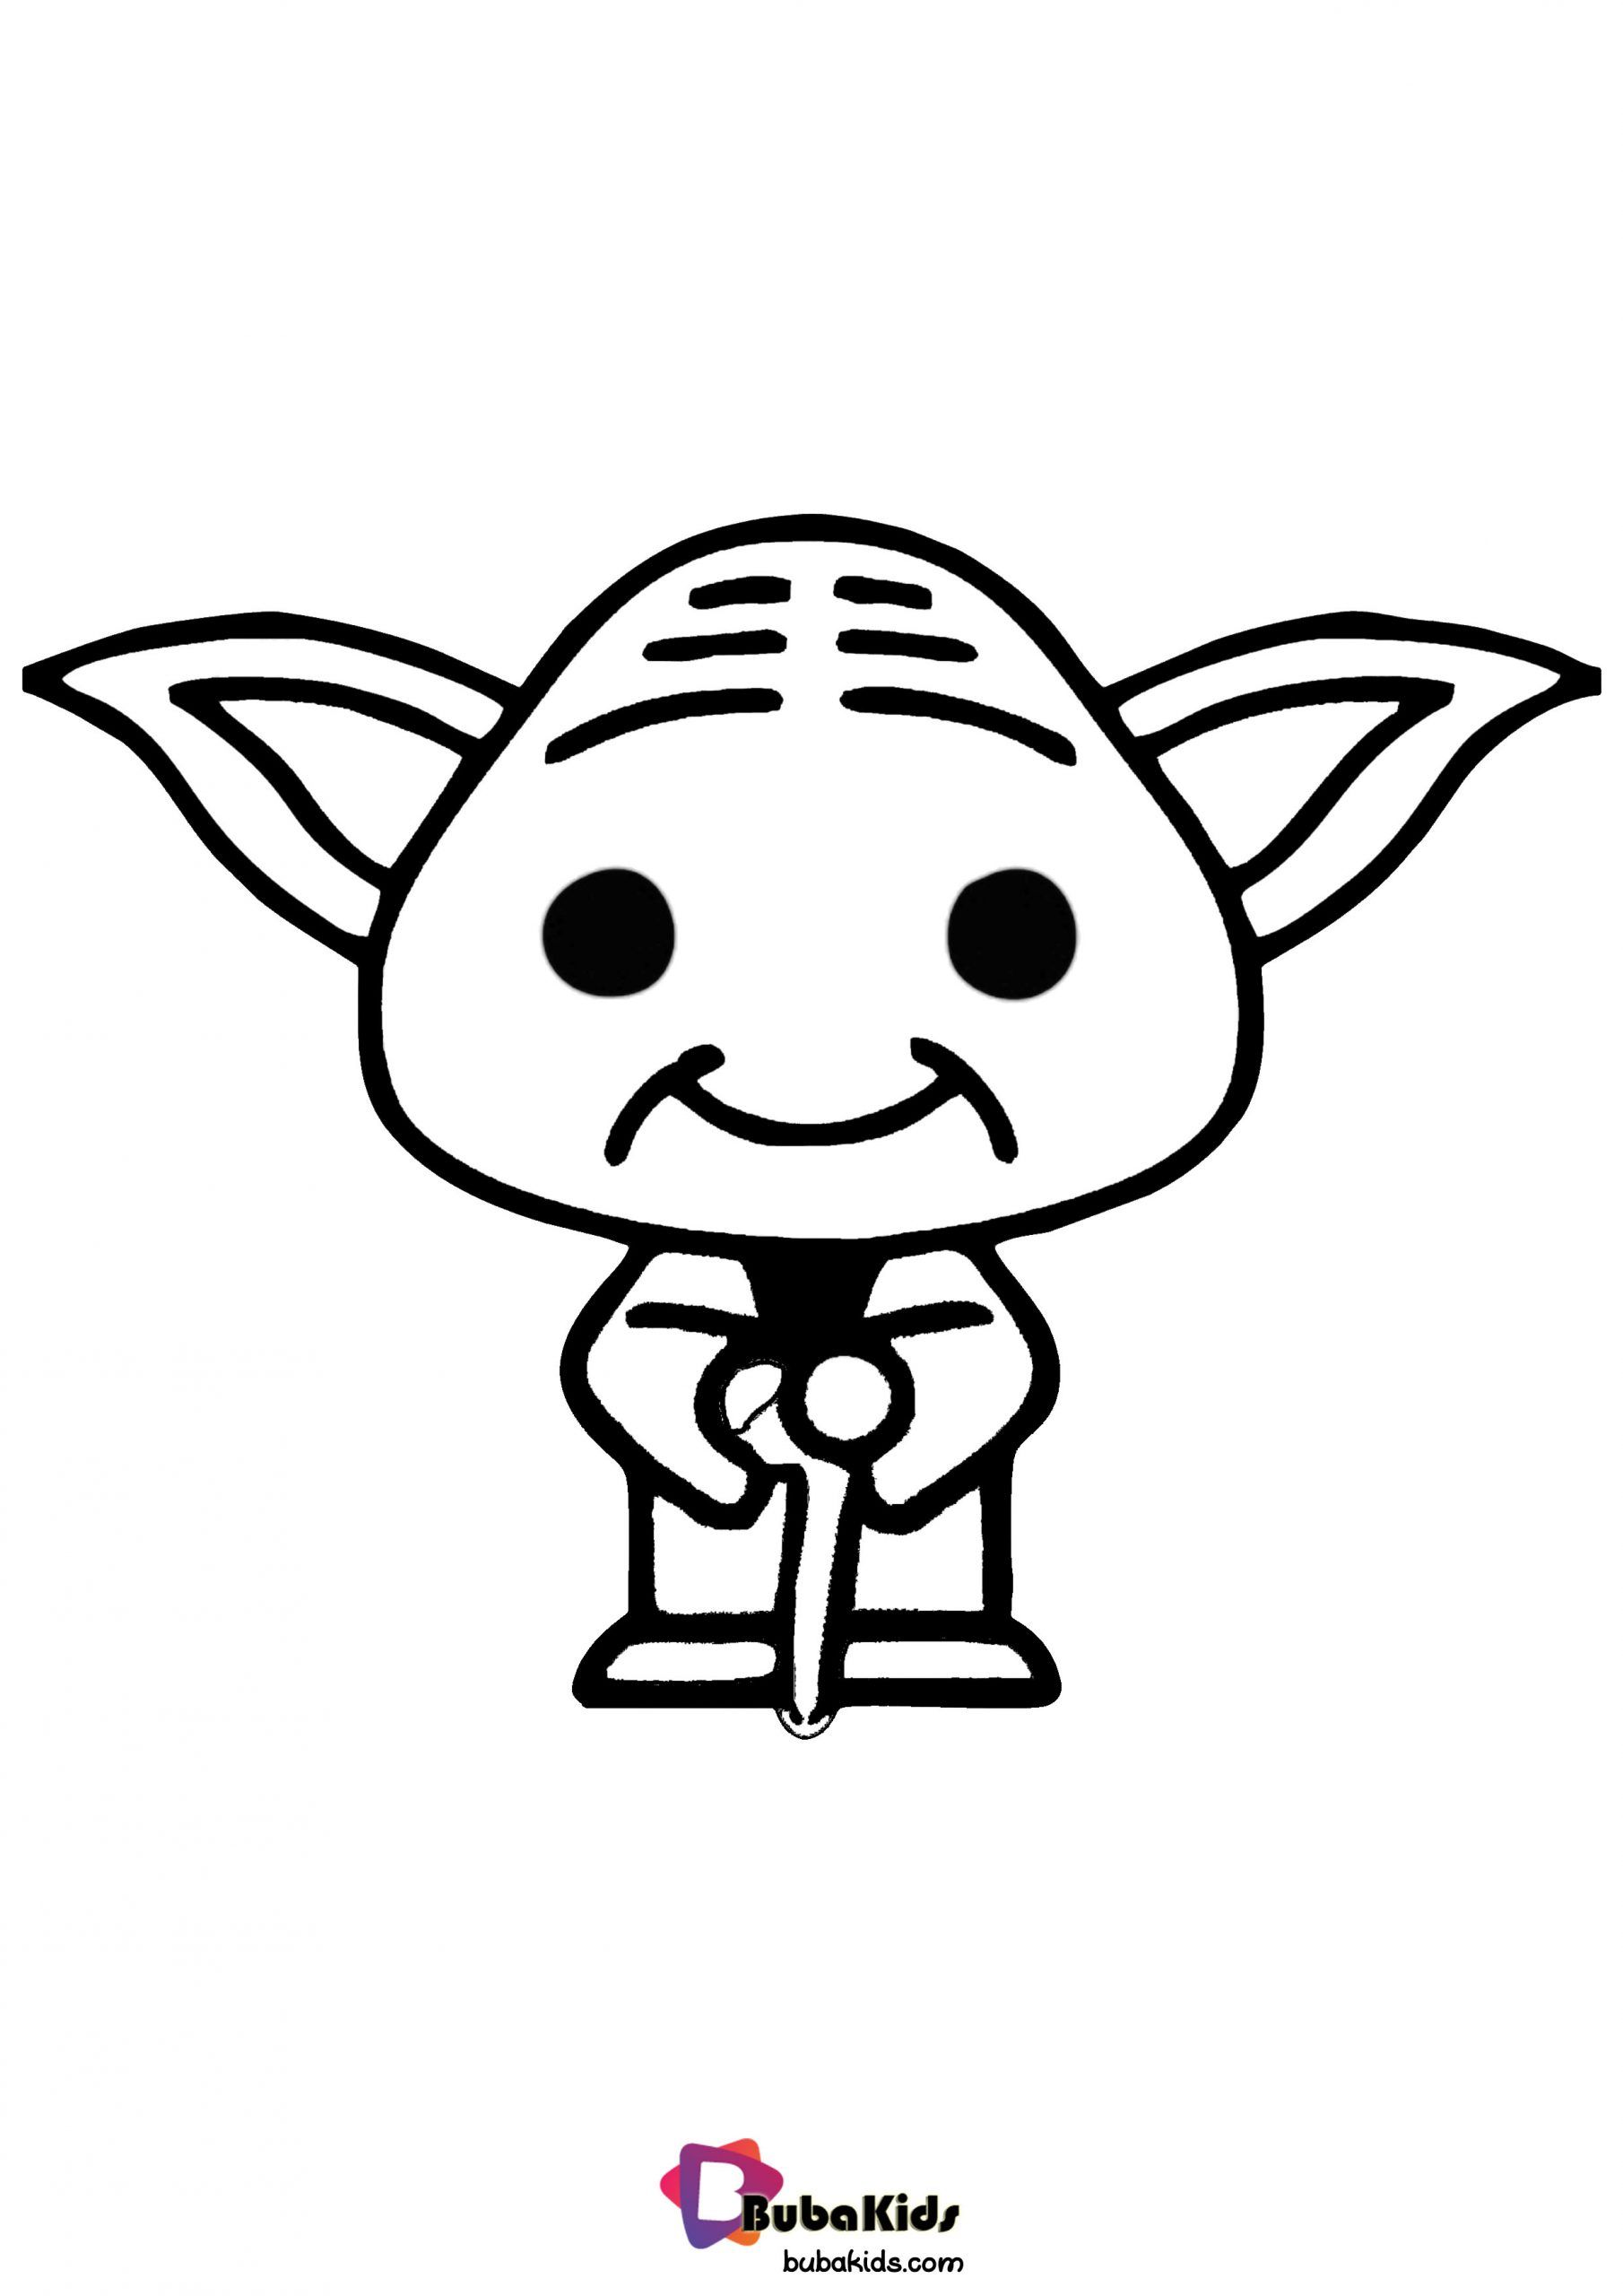 Baby Yoda Coloring Page | Cartoon coloring pages, Coloring ...